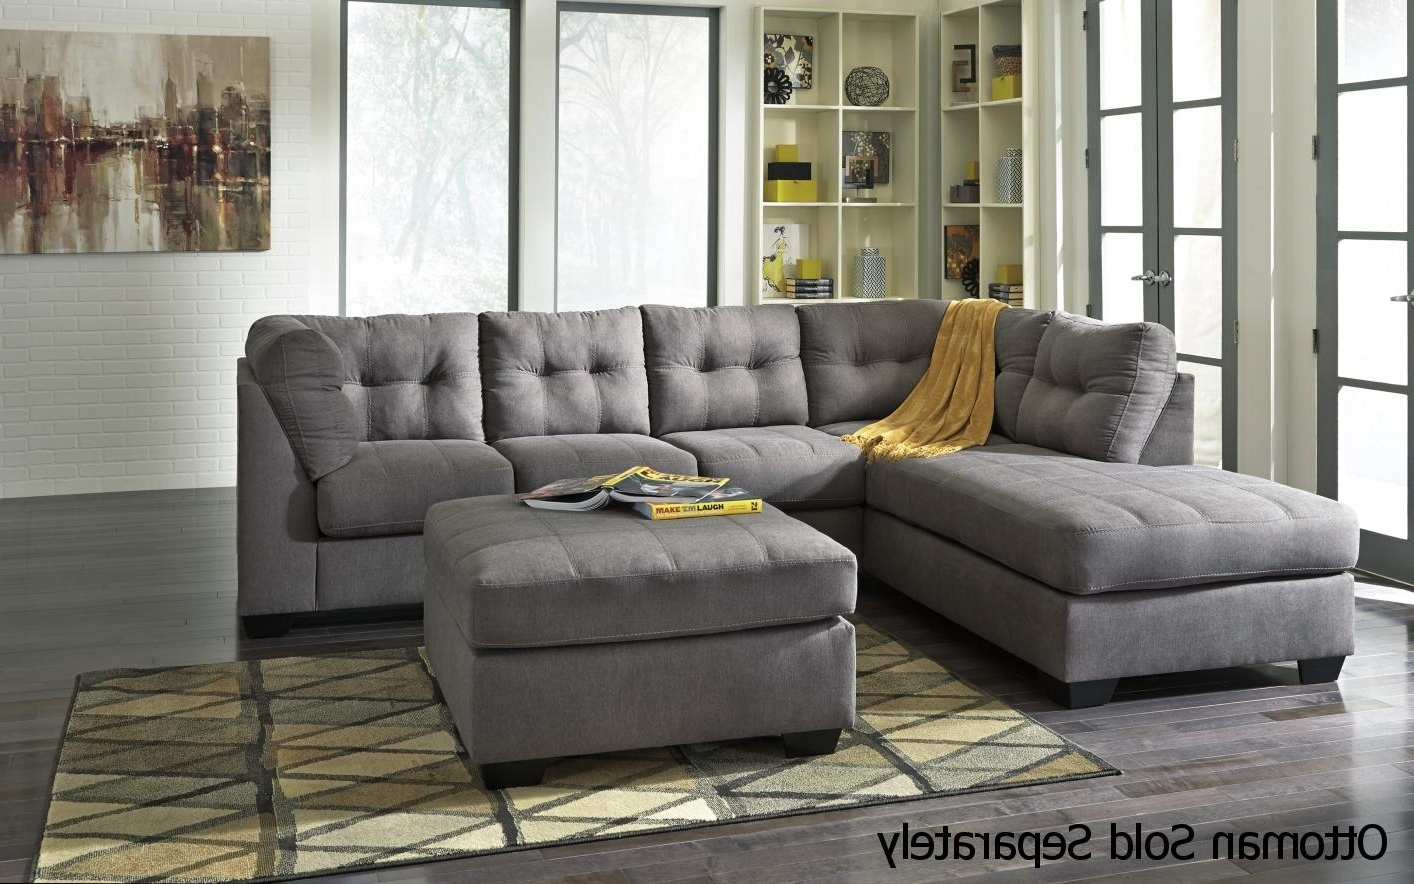 Fashionable Gray Sectional Sofa Plus Also Fabric Sectional Sofas Plus Also In Light Grey Sectional Sofas (View 11 of 15)